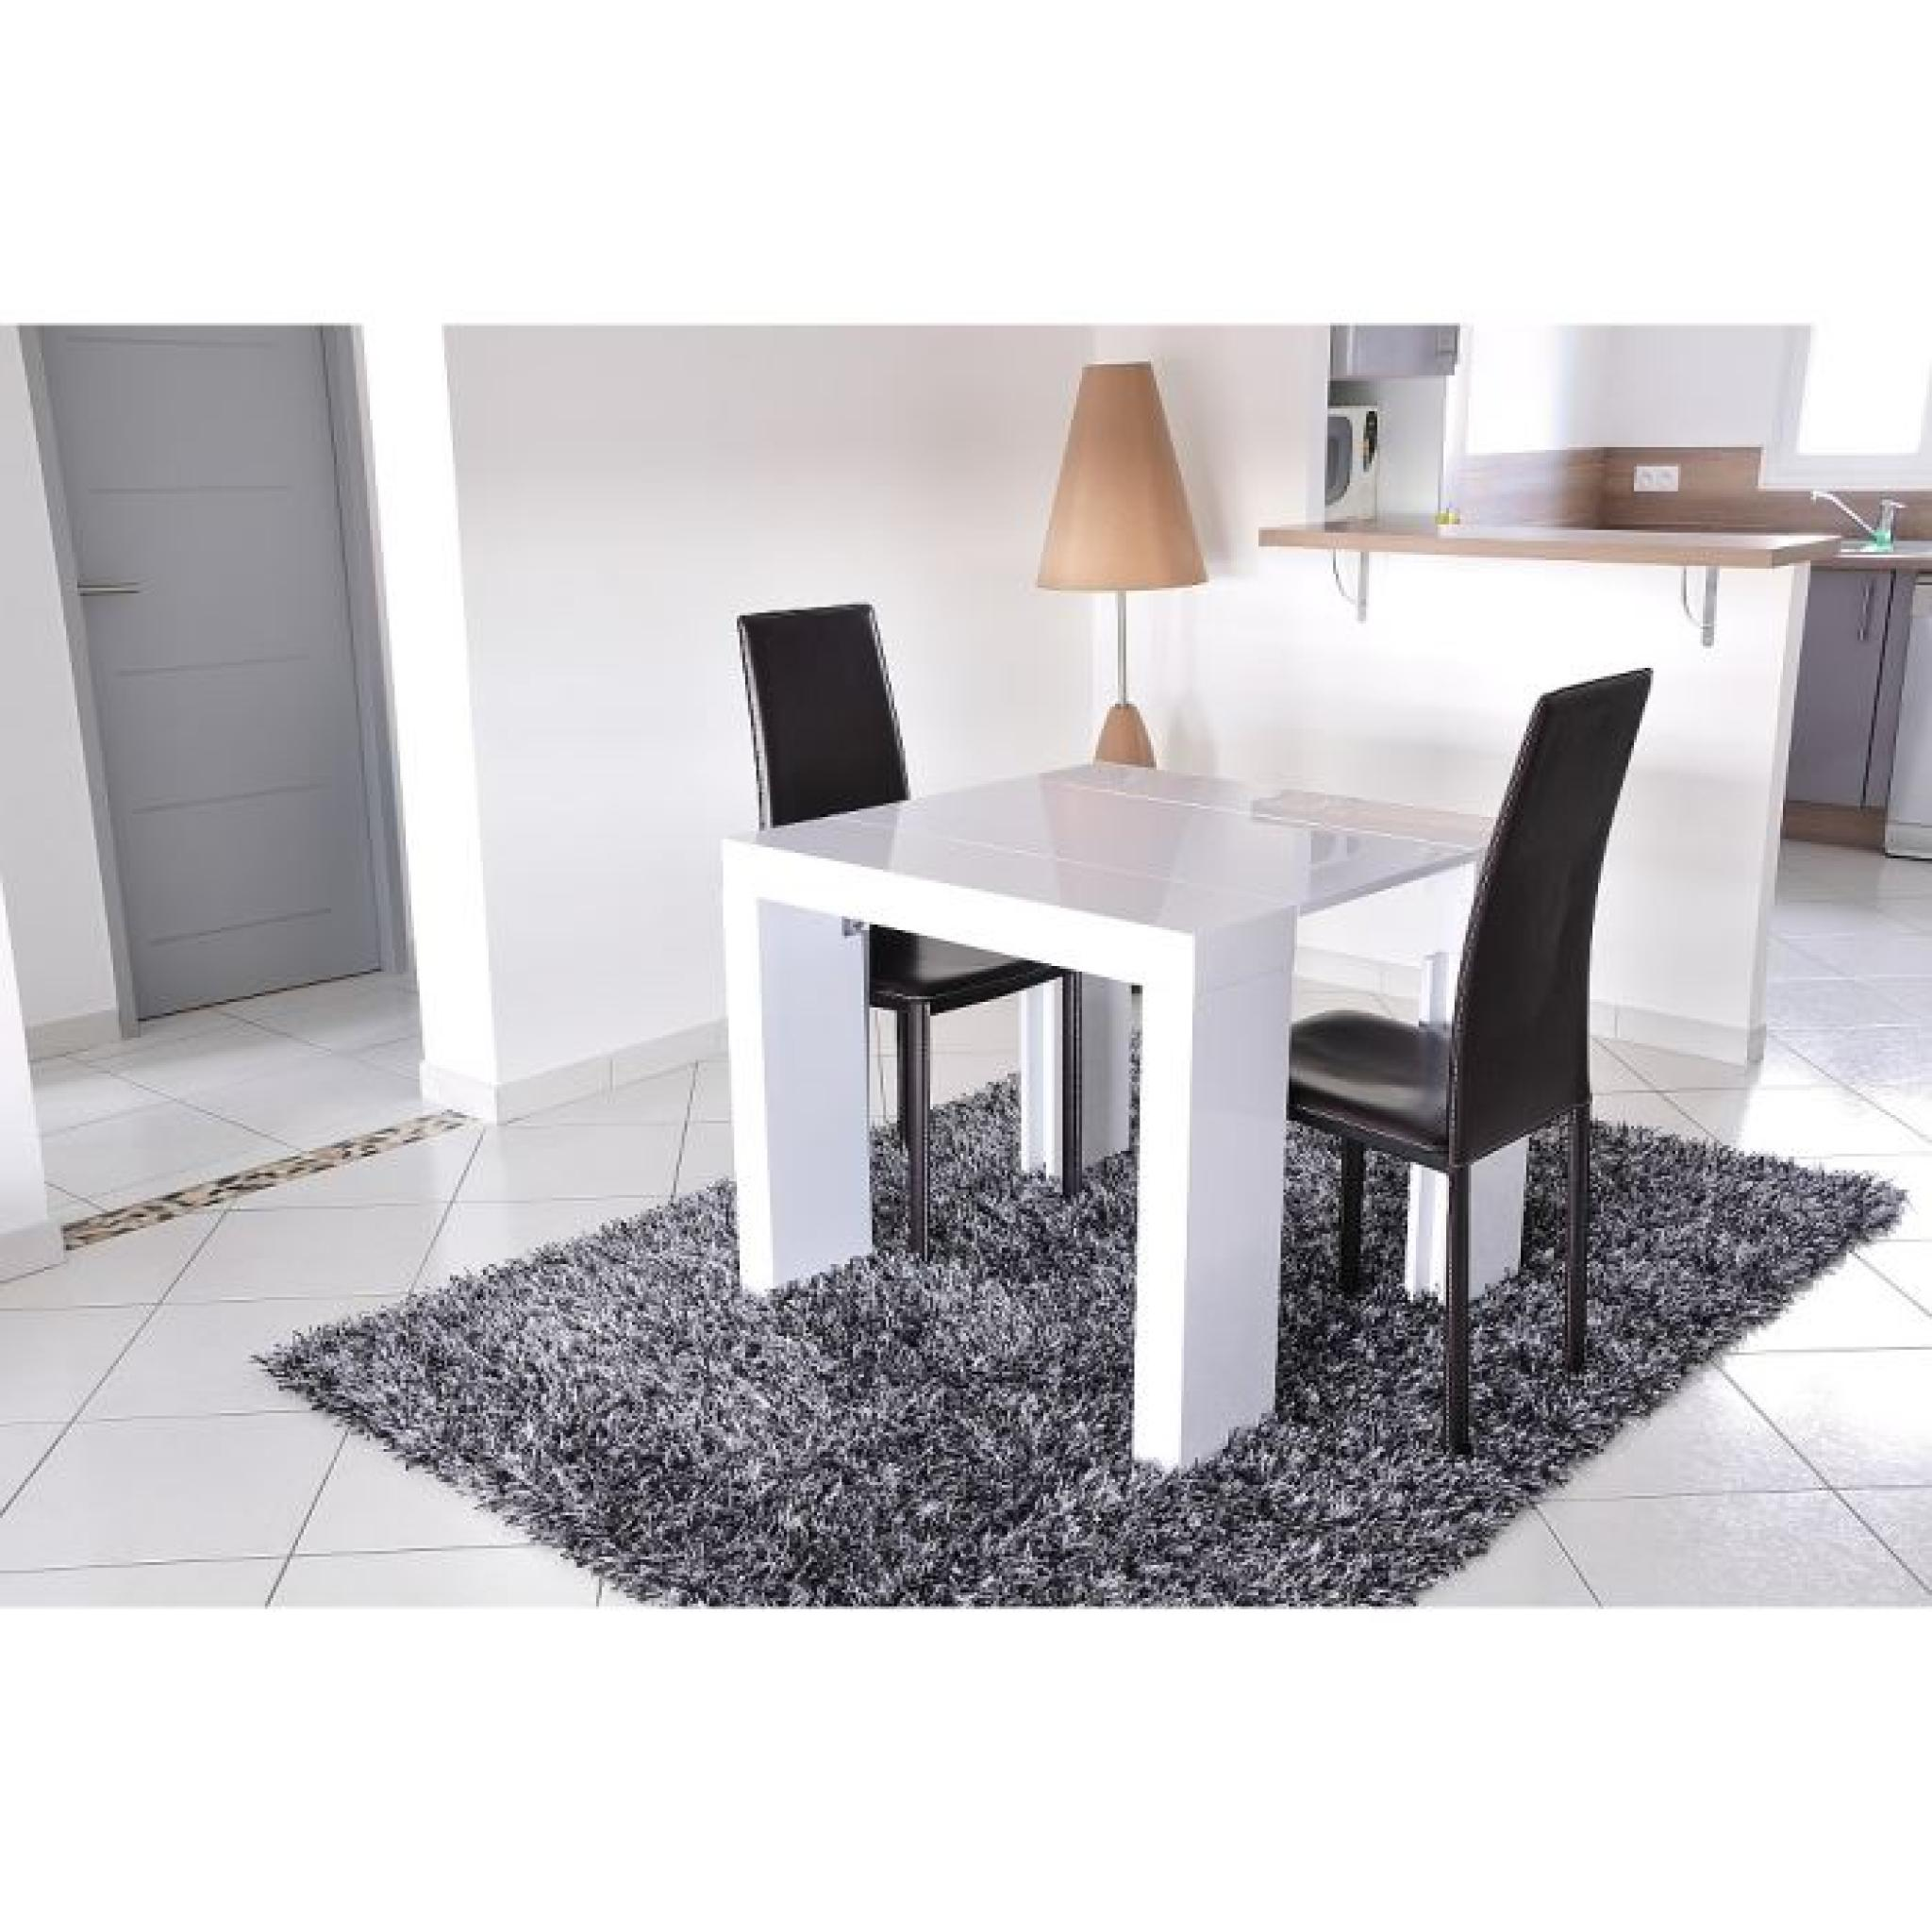 zack console extensible 250cm laqu blanc achat vente table salle a manger pas cher couleur. Black Bedroom Furniture Sets. Home Design Ideas